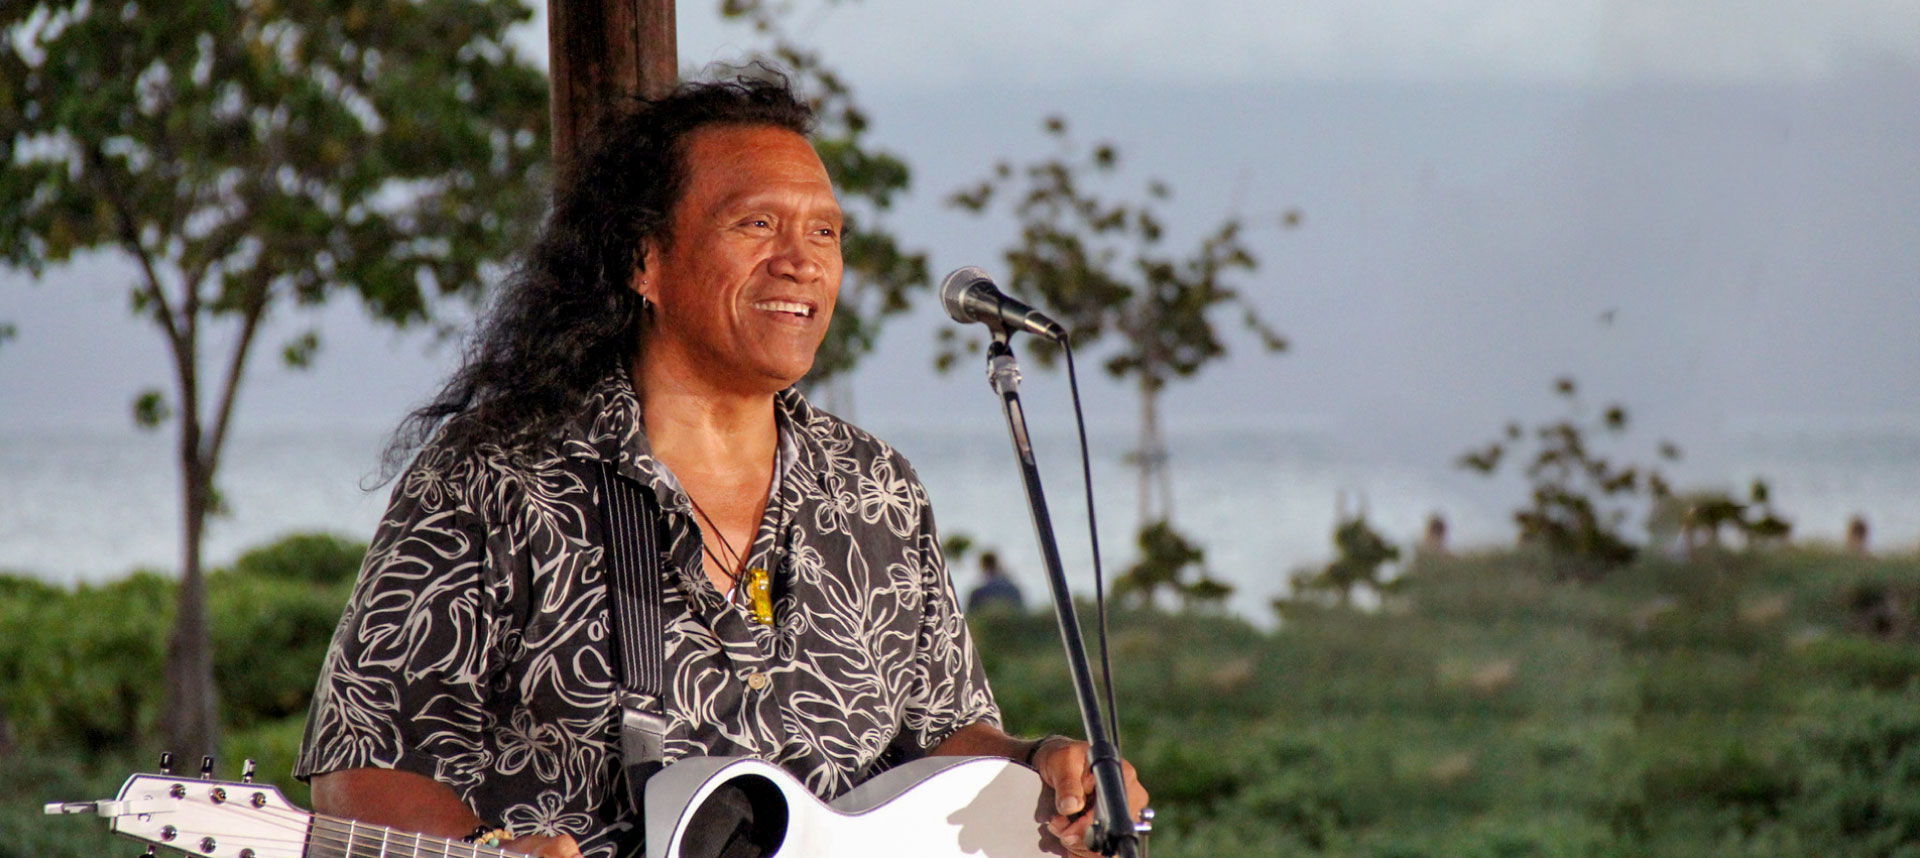 Henry kapono preforming by the beach